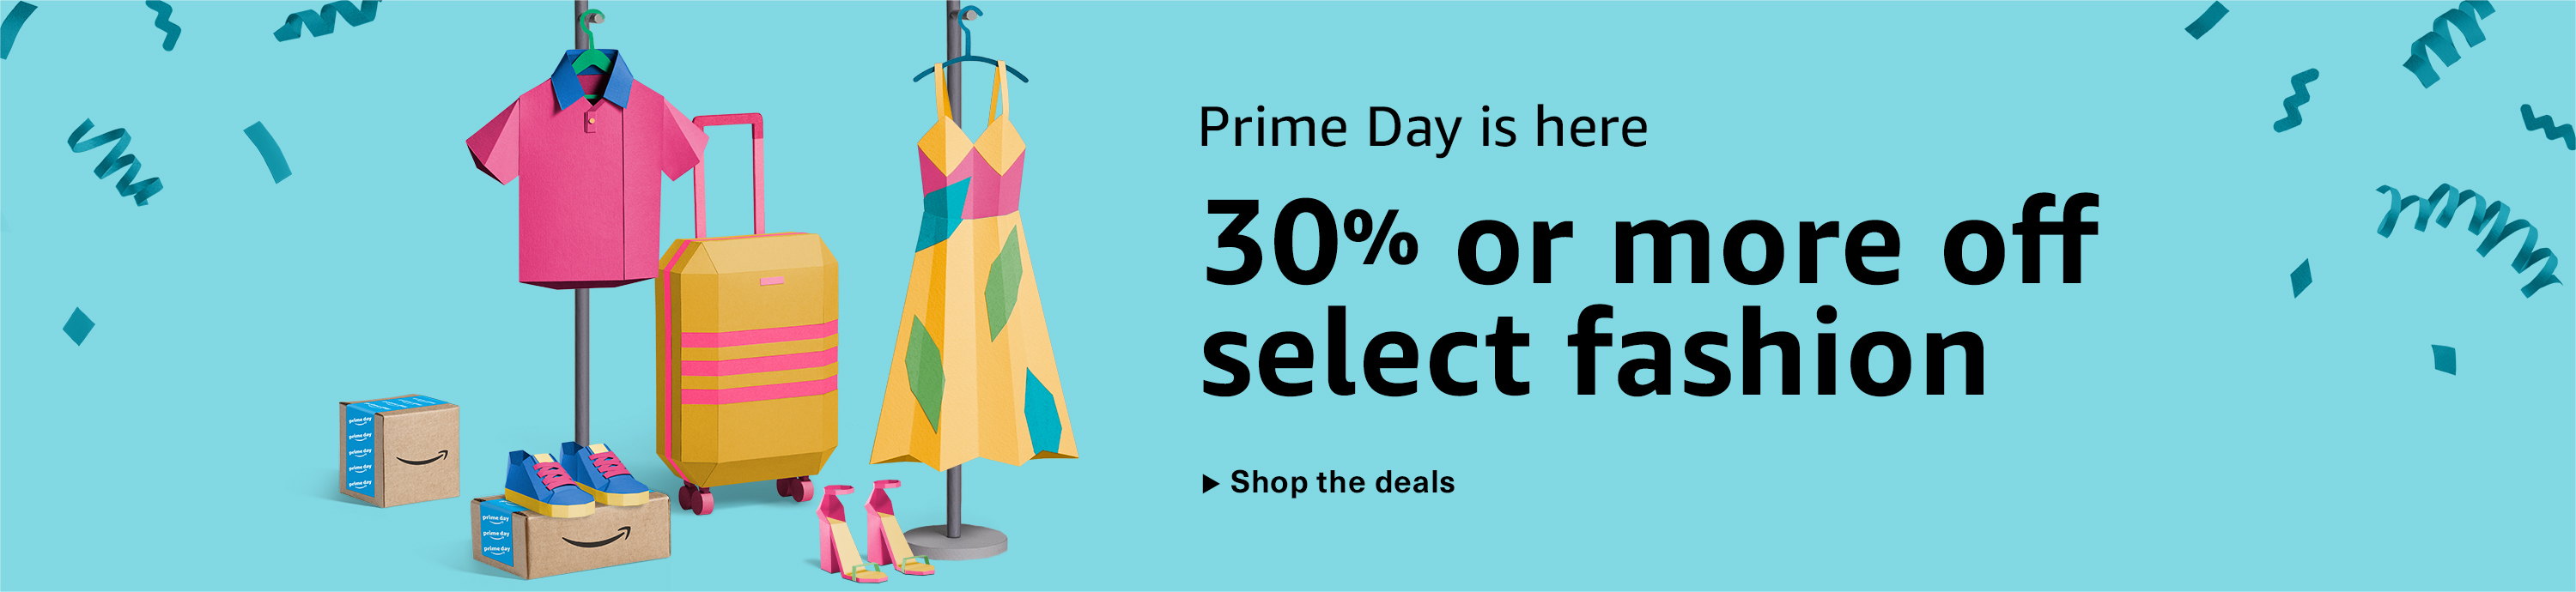 Prime Day is here: 30% or more off select fashion. Shop the deals.